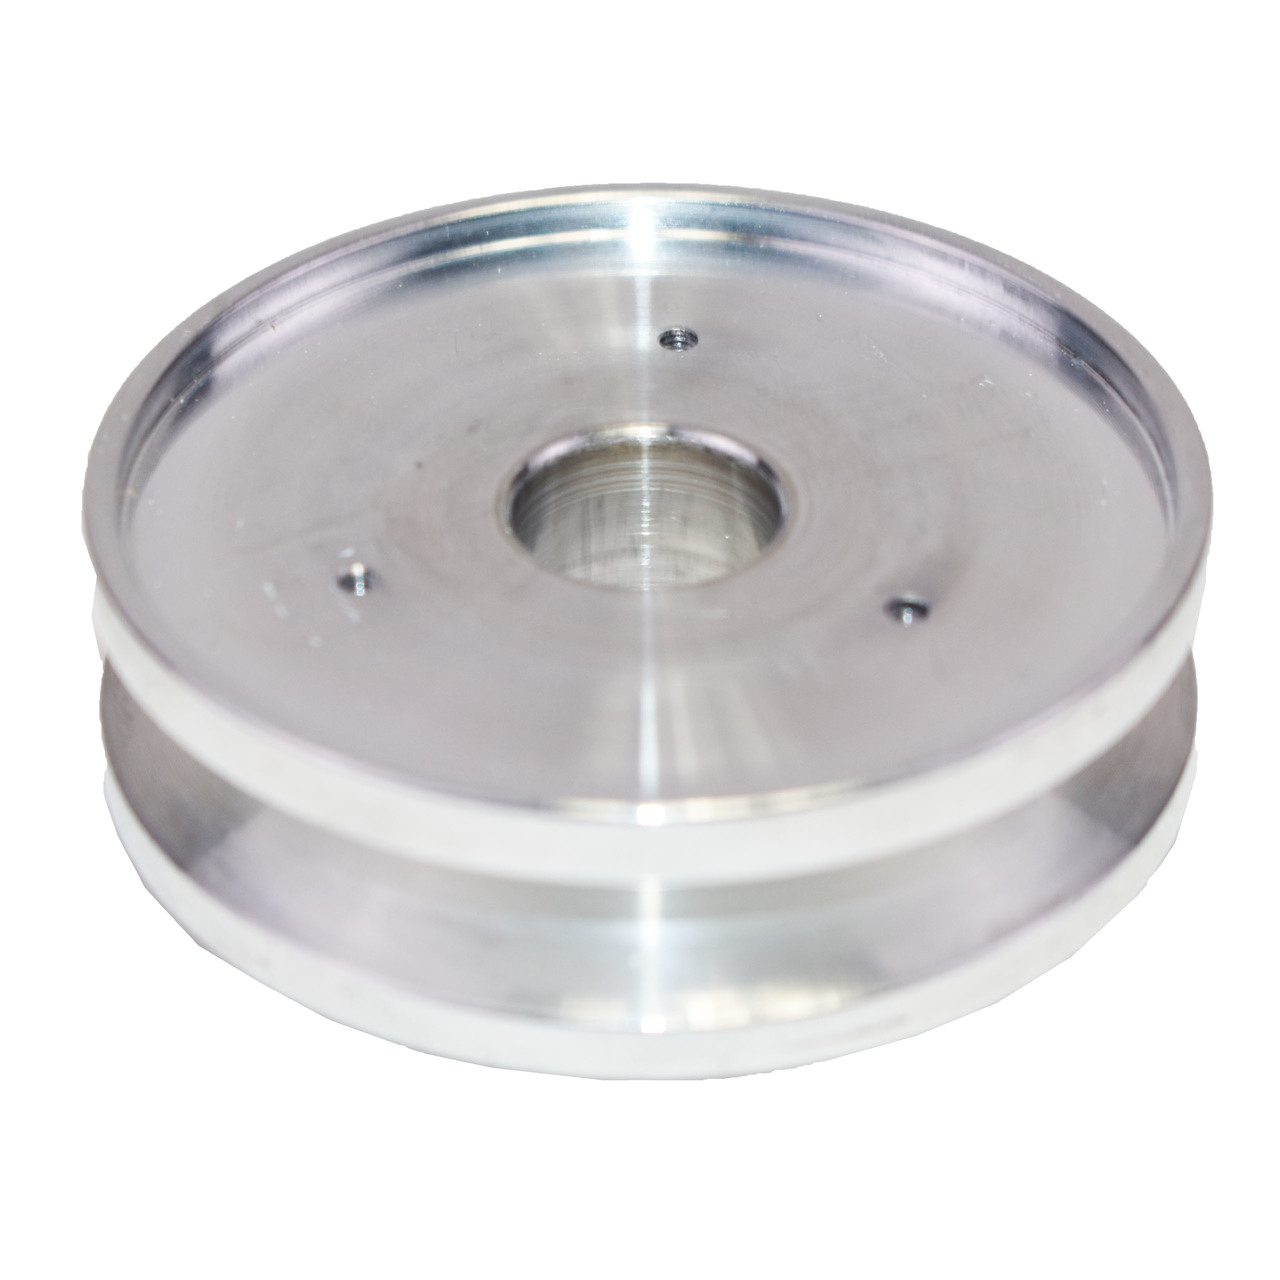 A-Team Performance GM SBC SINGLE-GROOVE ALUMINUM ALTERNATOR PULLEY WITH NOSE CONE COVER 283 350 400